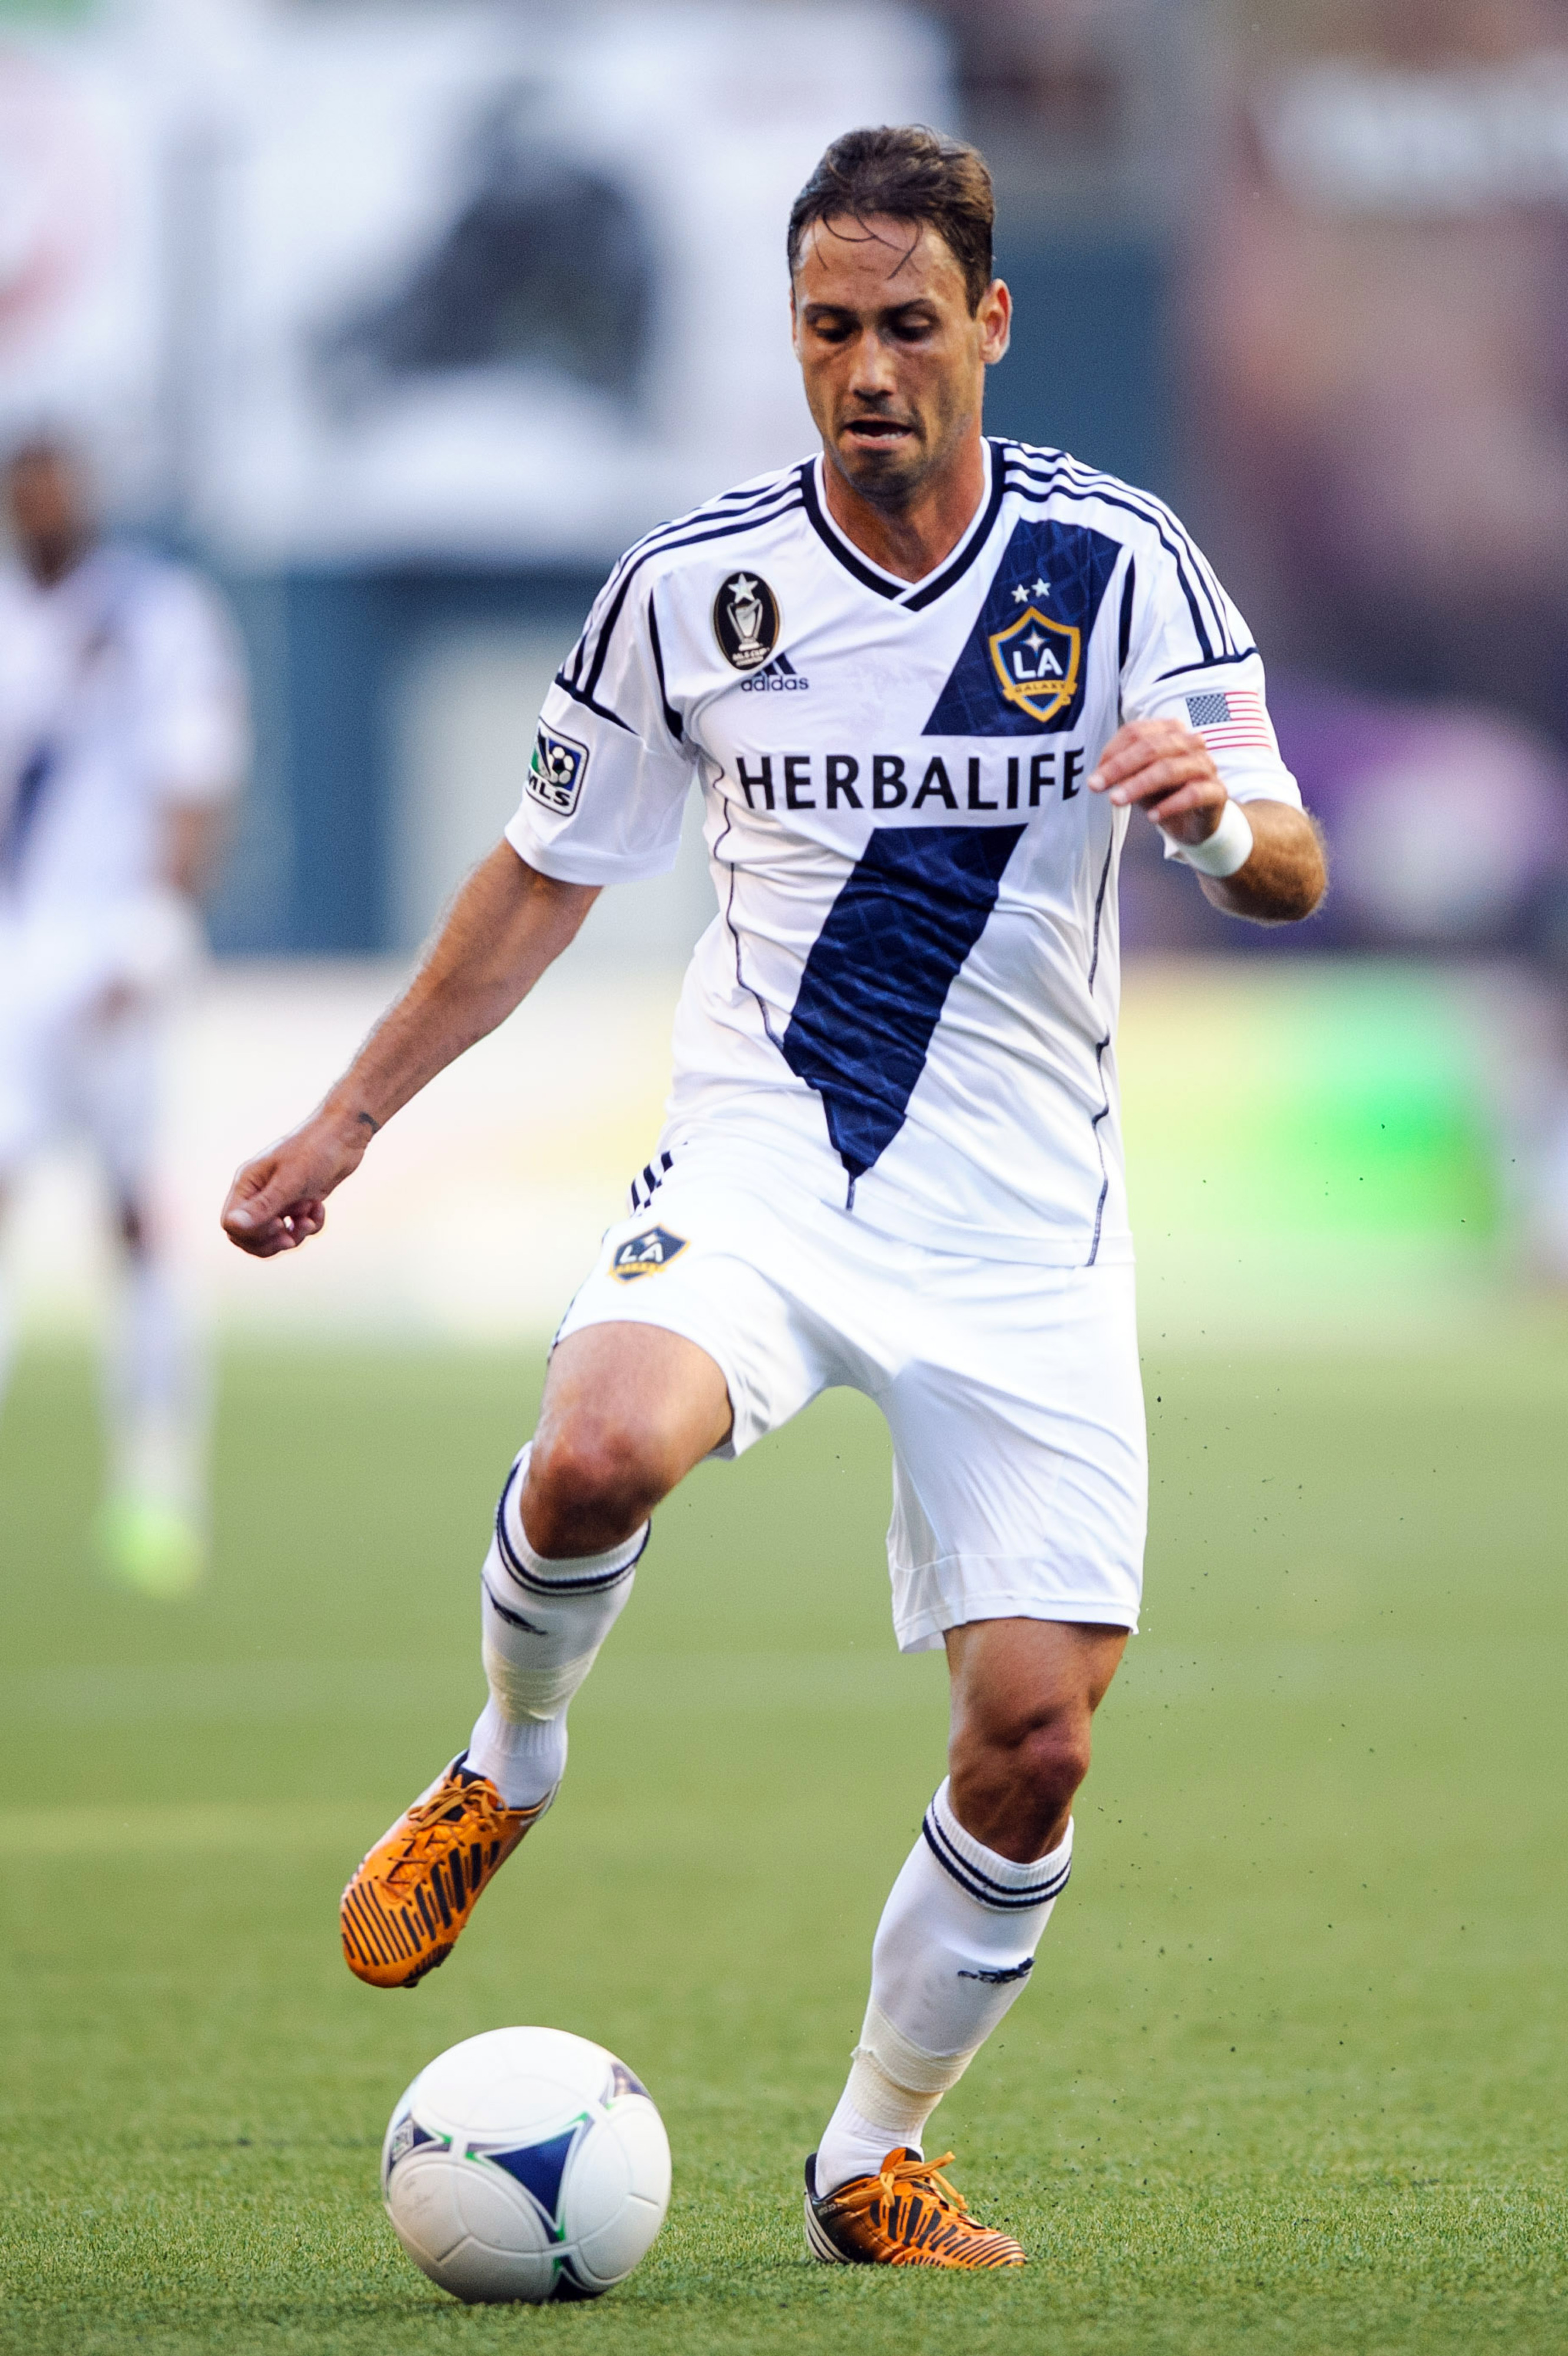 Aug 5, 2012; Seattle, WA, USA; LA Galaxy midfielder Marcelo Sarvas (8) moves the ball during the game against the Seattle Sounders FC at CenturyLink Field. Seattle defeated Los Angeles 4-0.  Mandatory Credit: Steven Bisig-US PRESSWIRE